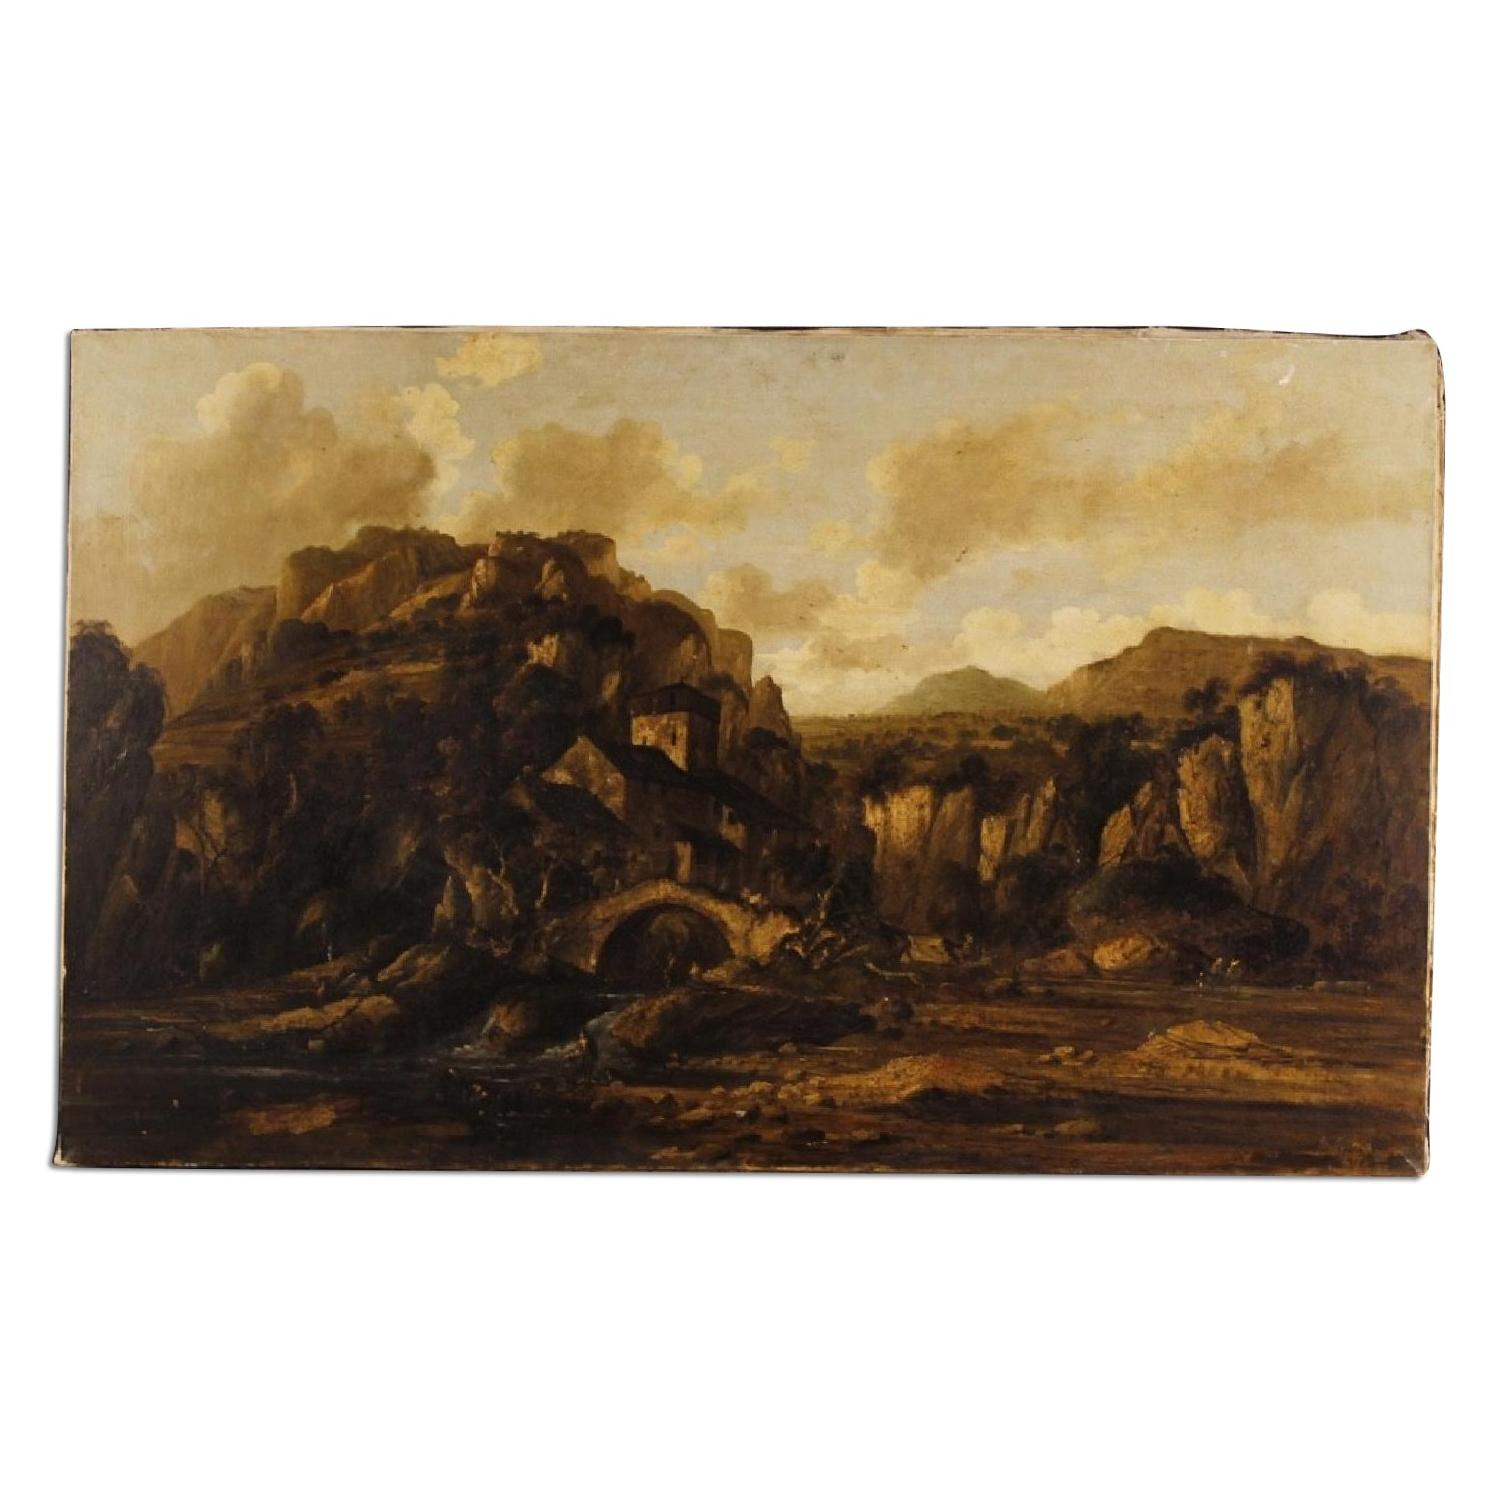 Italian Landscape Painting Oil On Canvas 20th Century